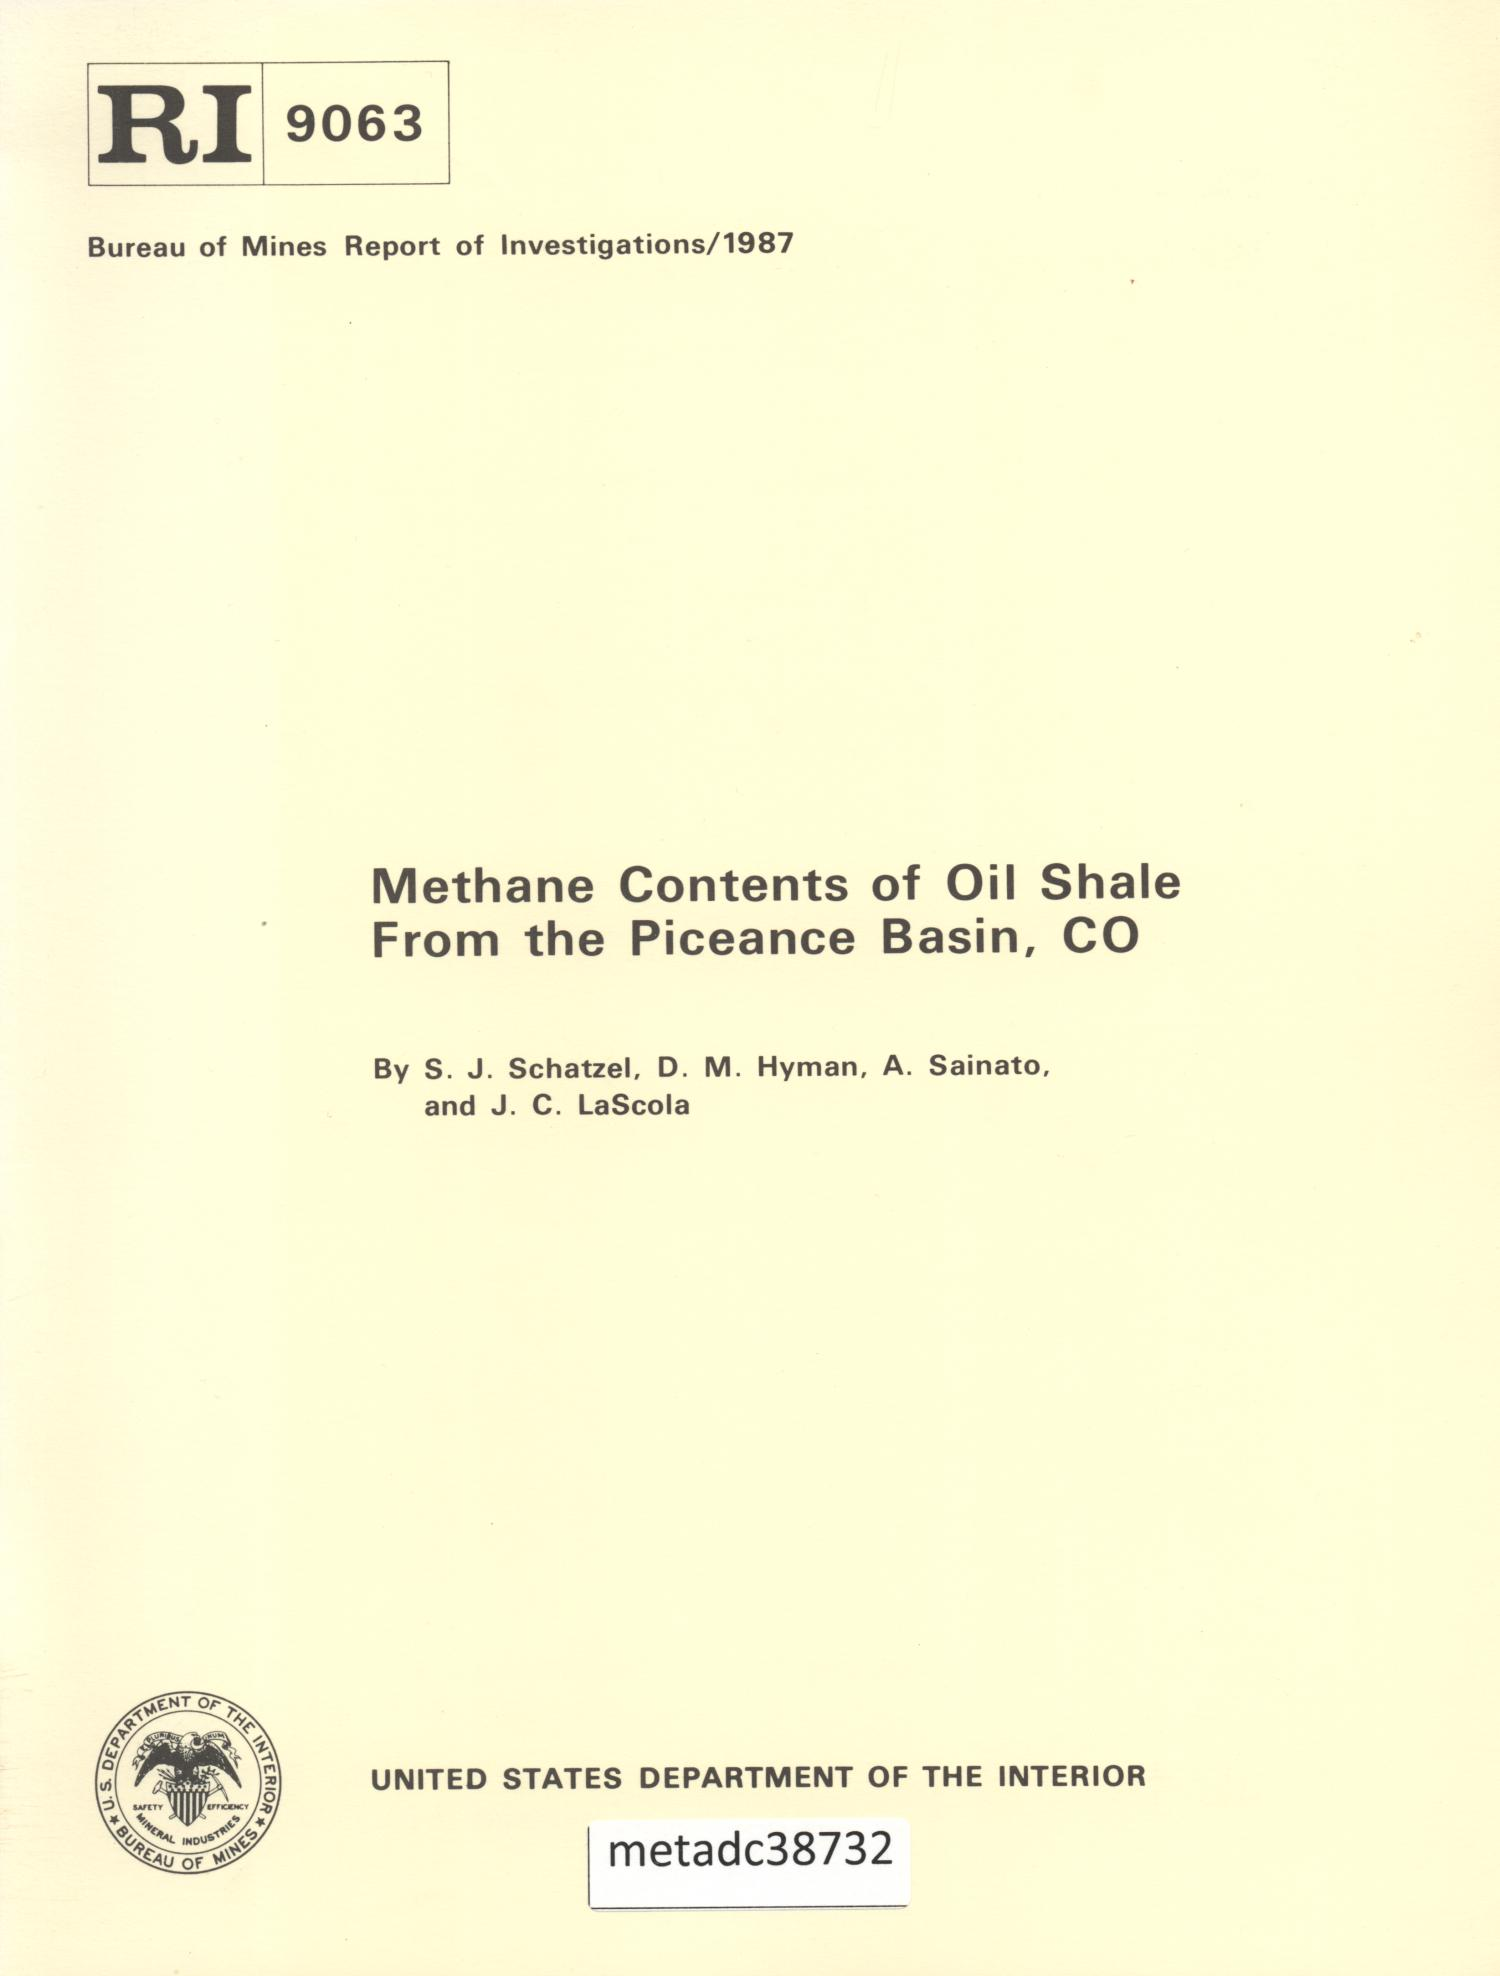 Methane Contents of Oil Shale from the Piceance Basin, Colorado                                                                                                      Front Cover